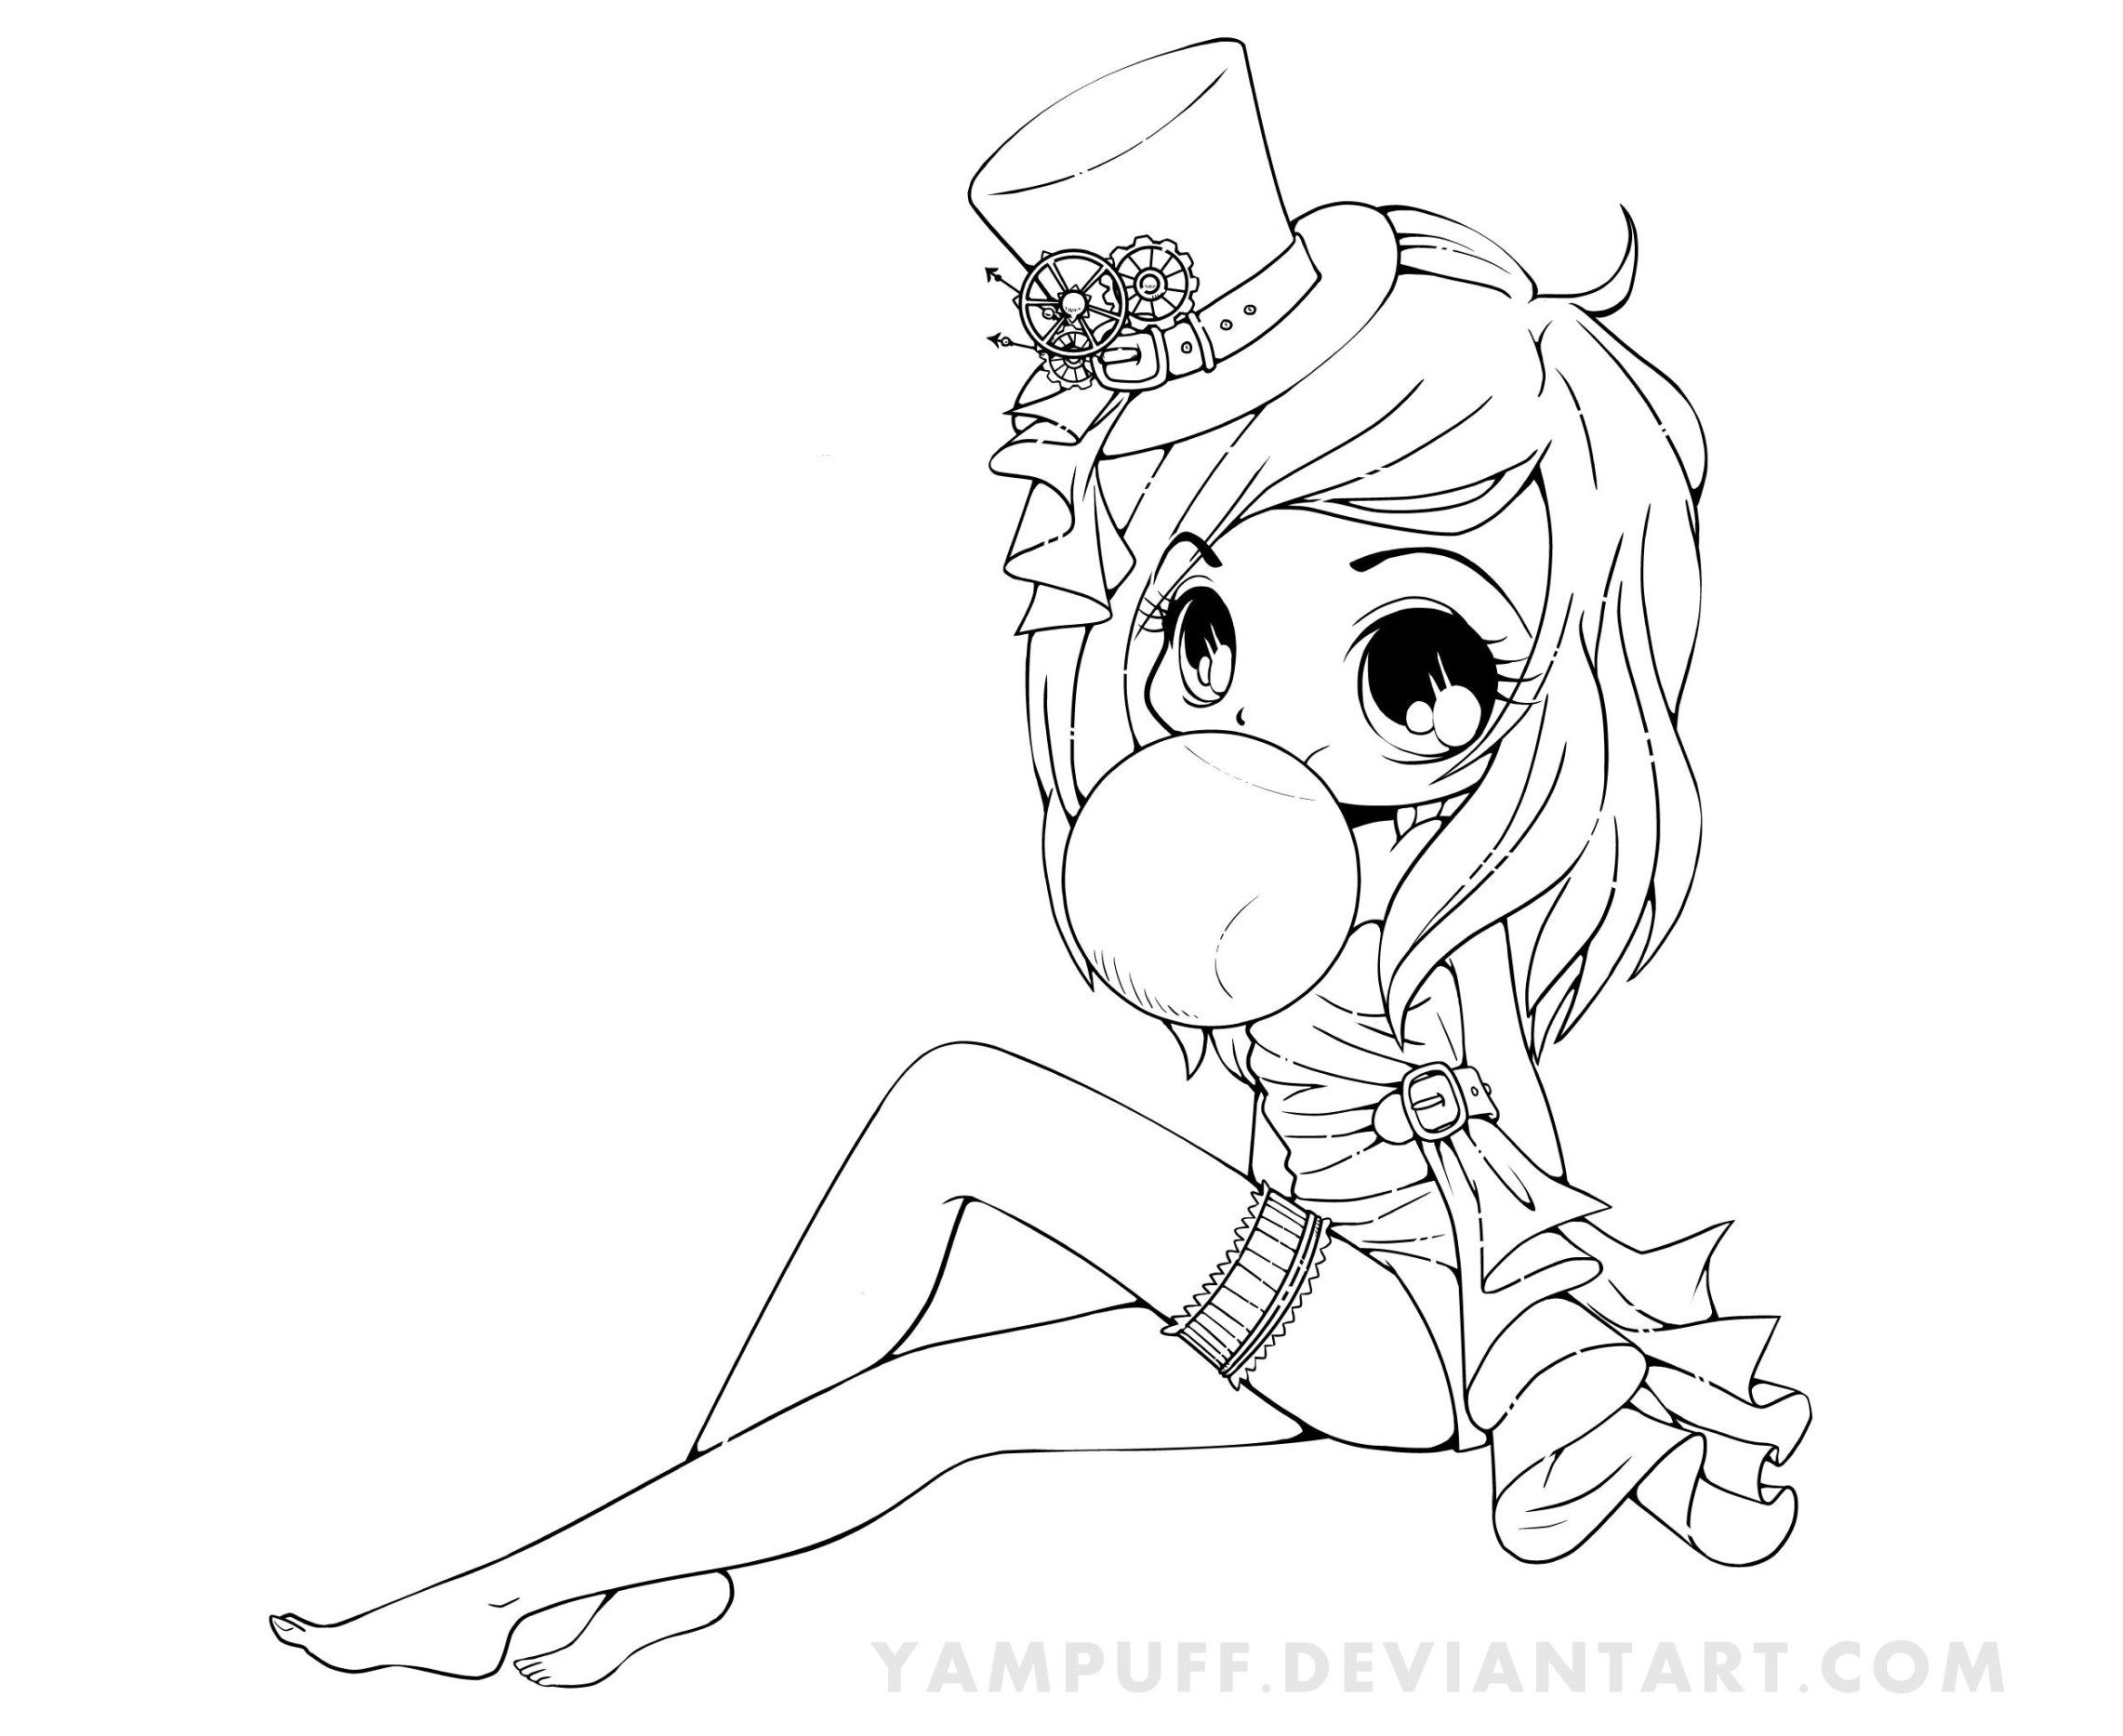 Chibi Coloring Pages Chibi Coloring Pages Geekpowered Me Anime Princesses Krfes Info At Davemelillo Com Chibi Coloring Pages Princess Coloring Pages Unicorn Coloring Pages